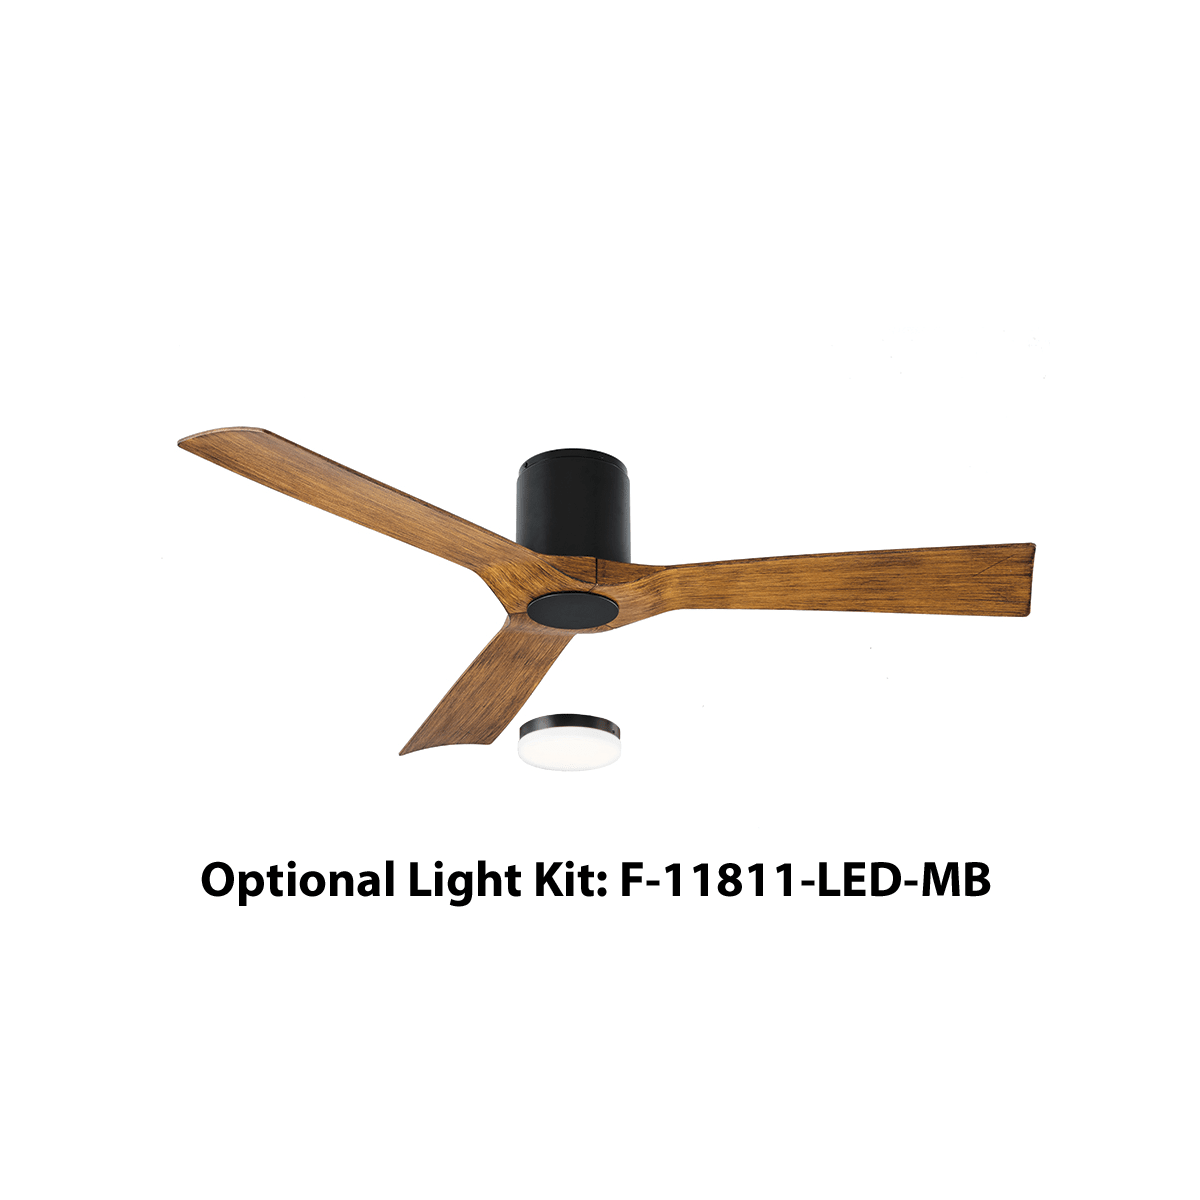 Modern Forms Aviator 54 Flush Ceiling Fan Light Switch Wiring Diagram As Well How To Wire A Fh W1811 Gh Wg Graphite 3 Blade Hugger Indoor Outdoor Smart With Wall Control